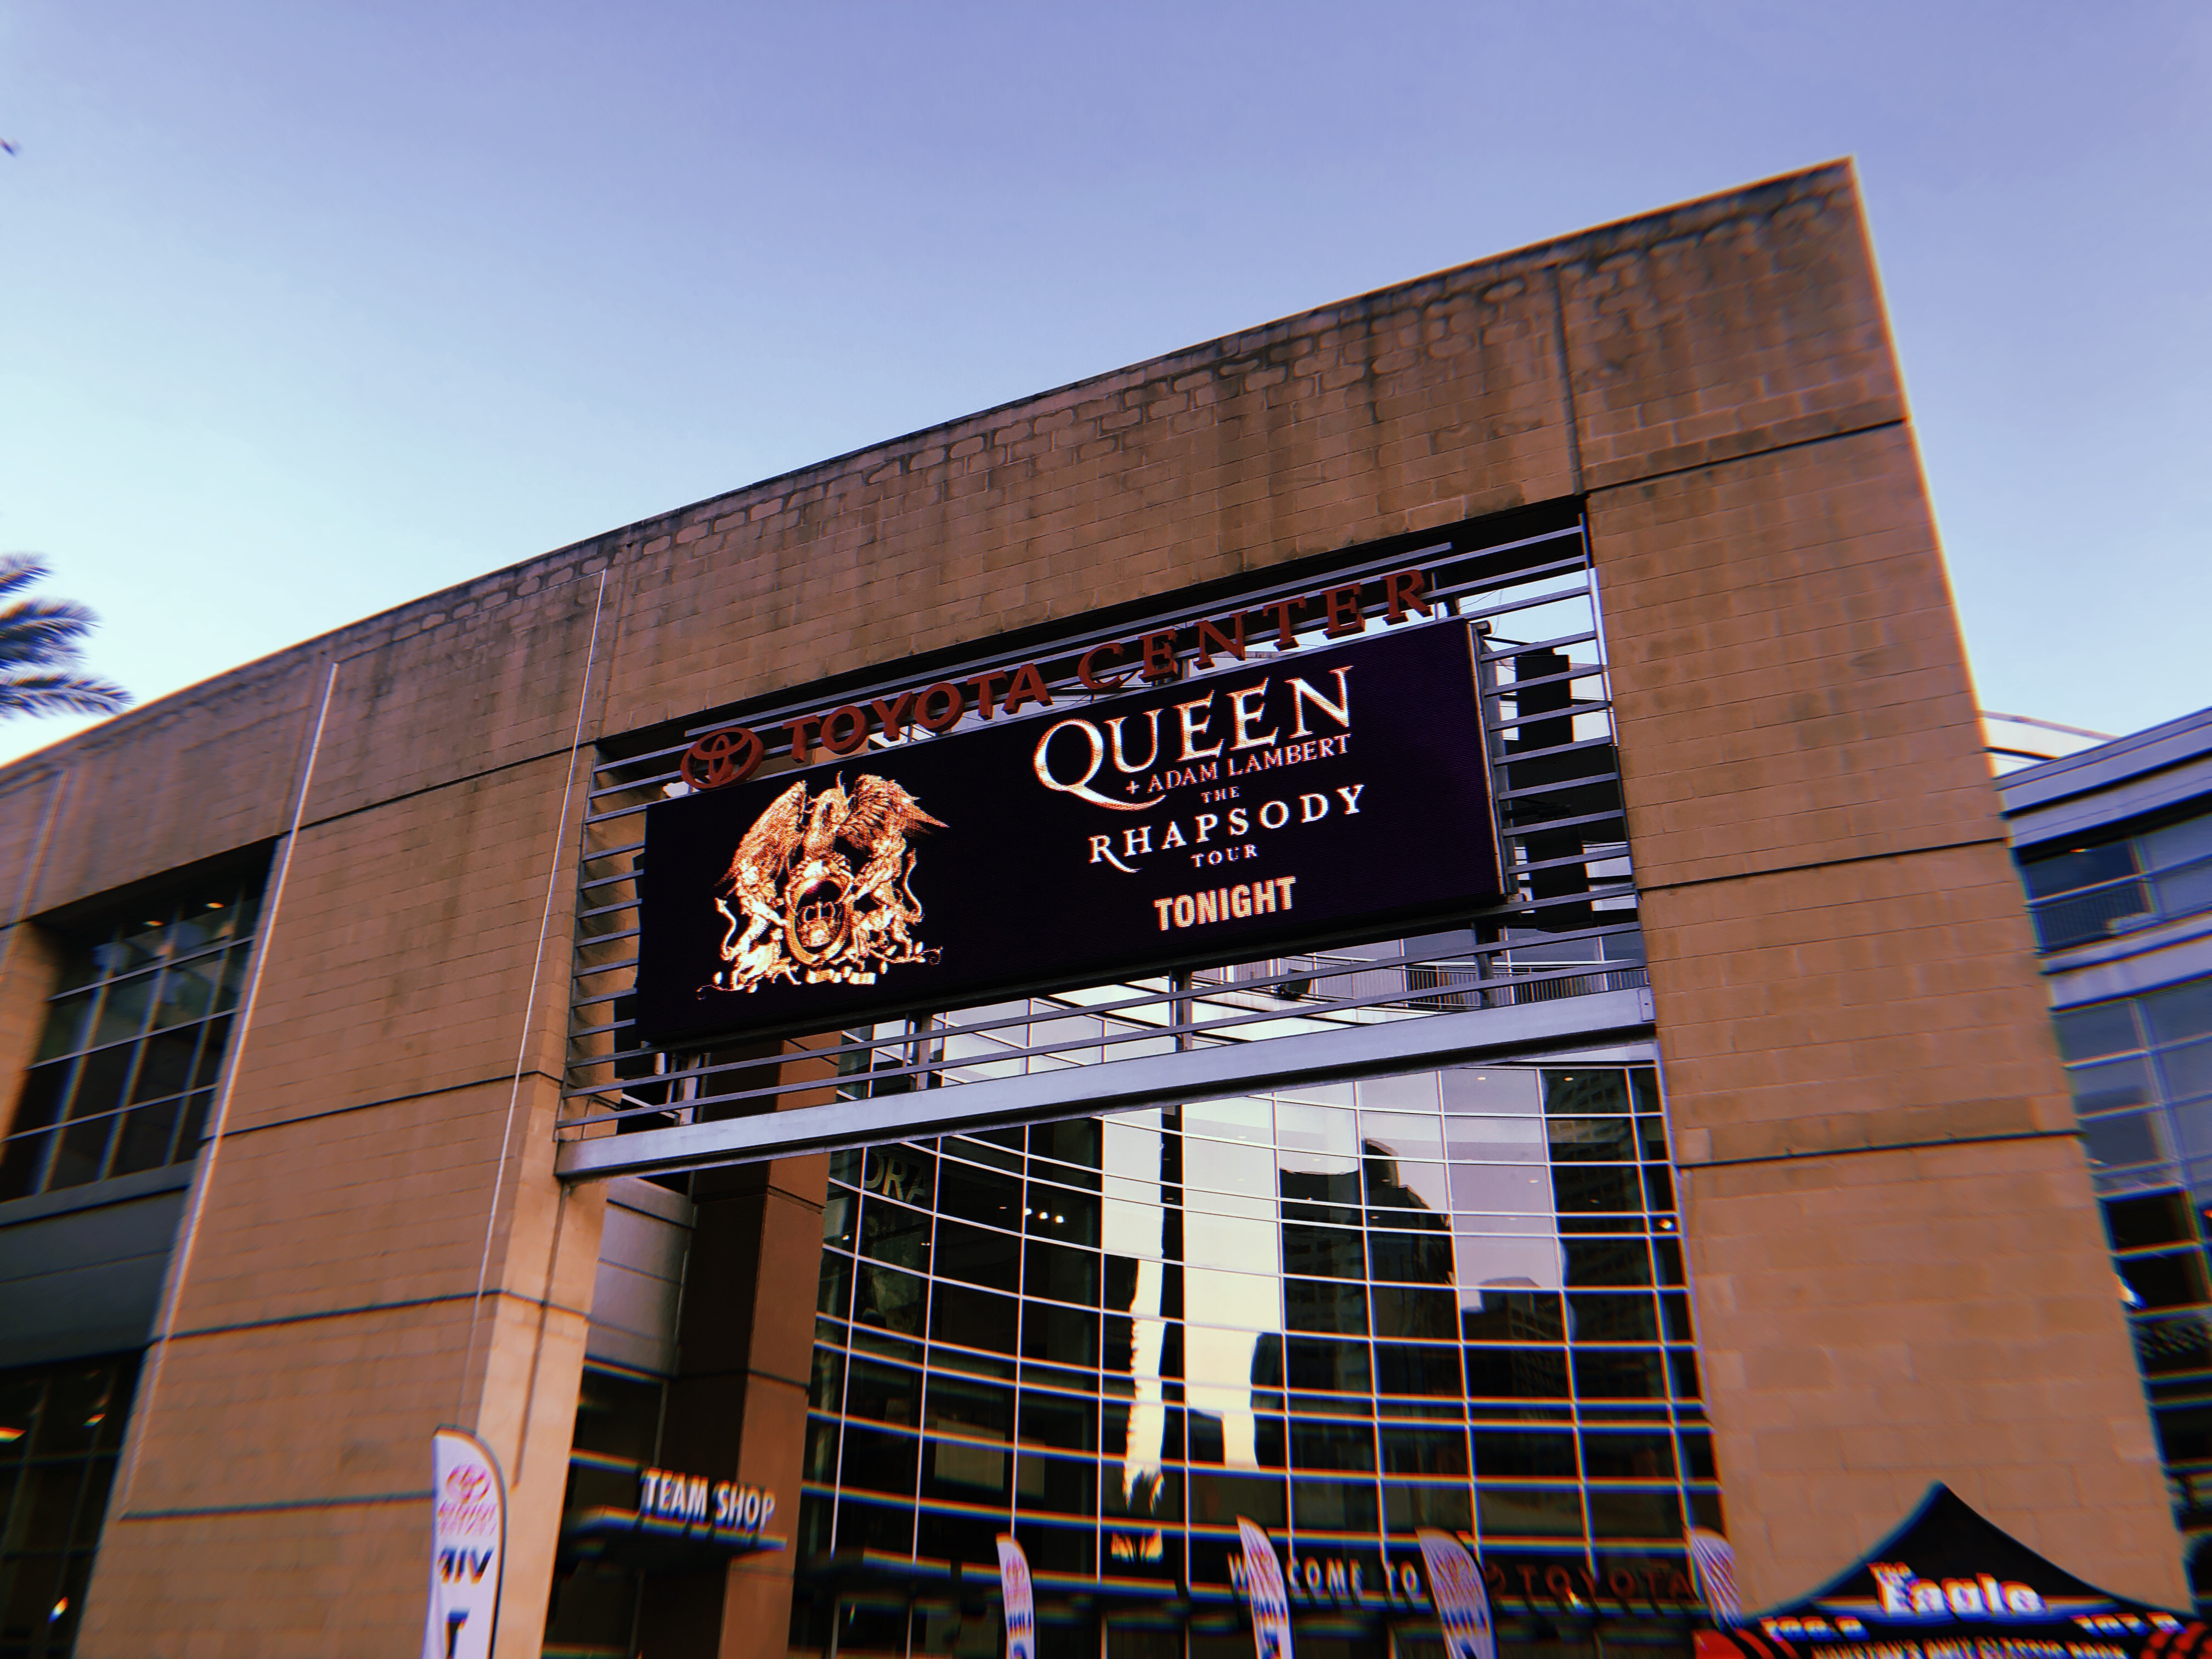 Queen + Adam Lambert's seventh stop on the Rhapsody Tour was theToyota Center in Houston, Texas.